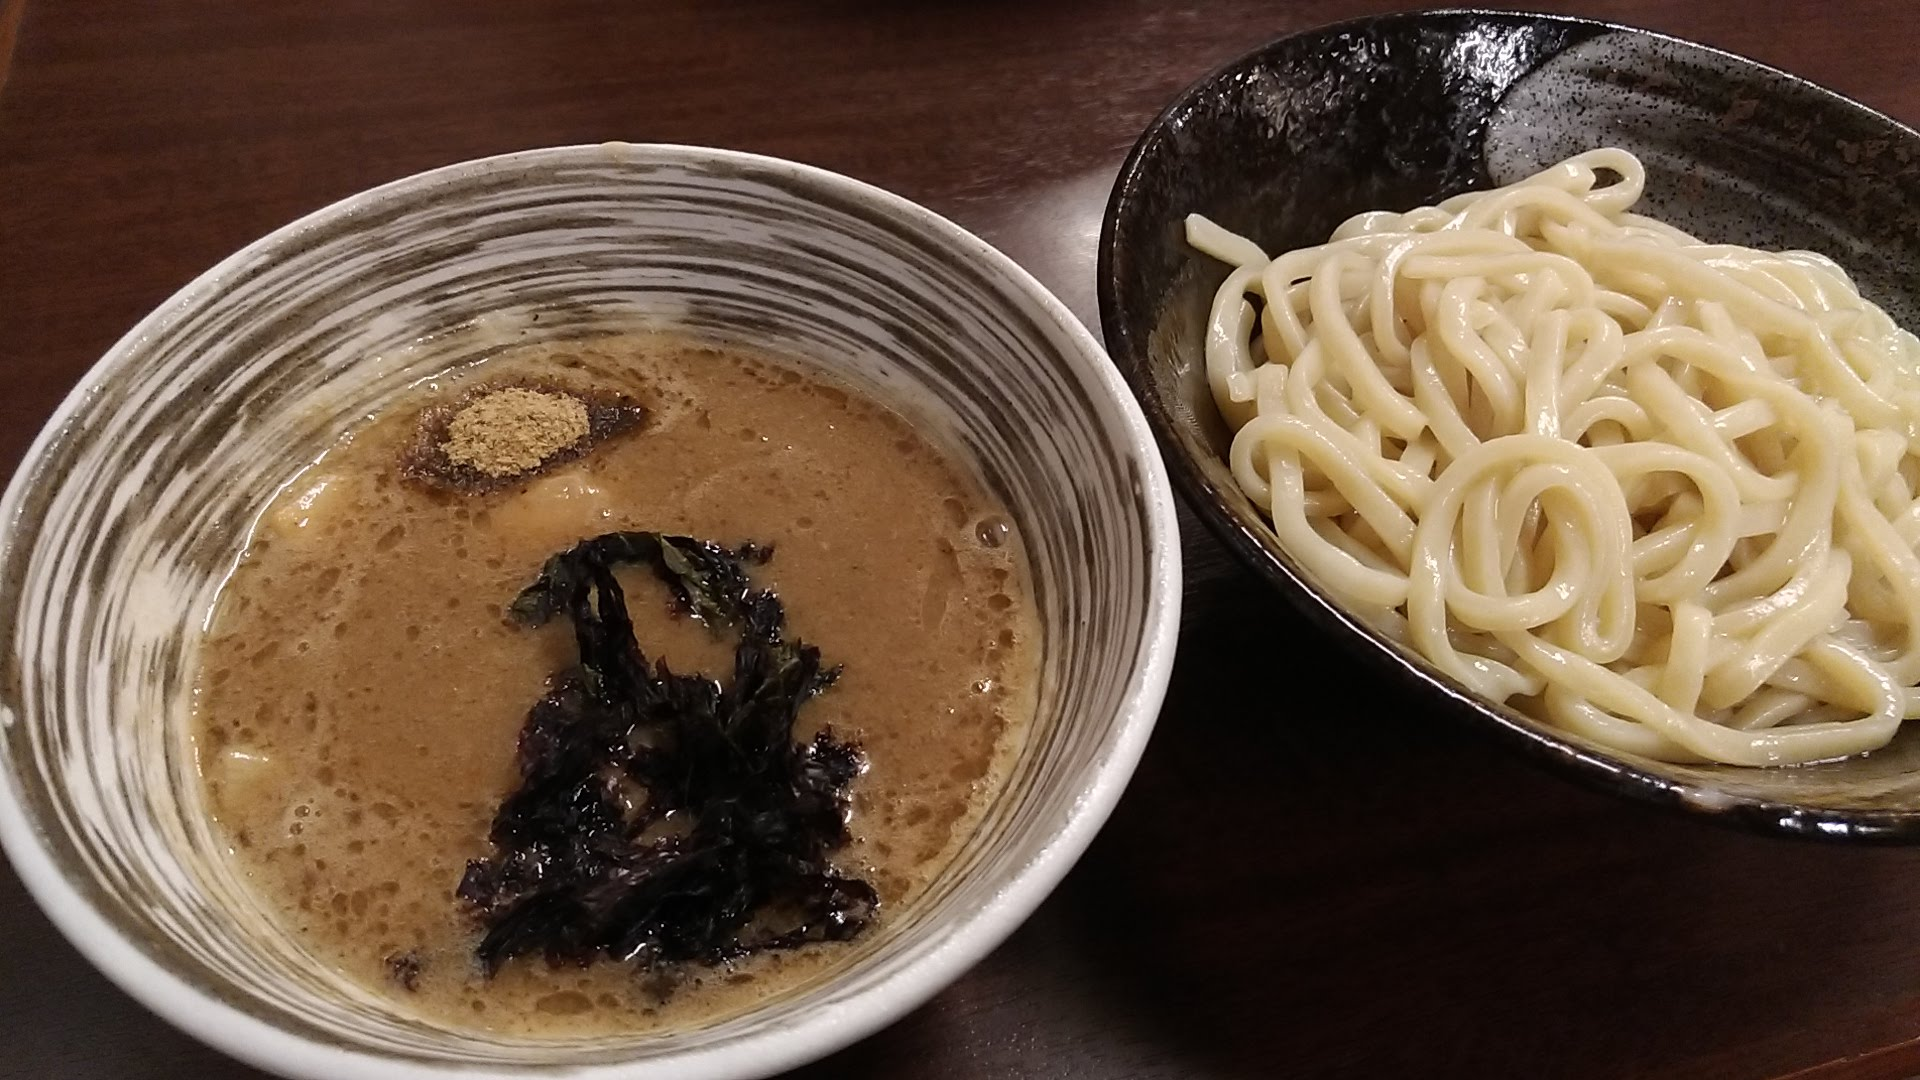 Rich chicken and fish dream Tsukemen